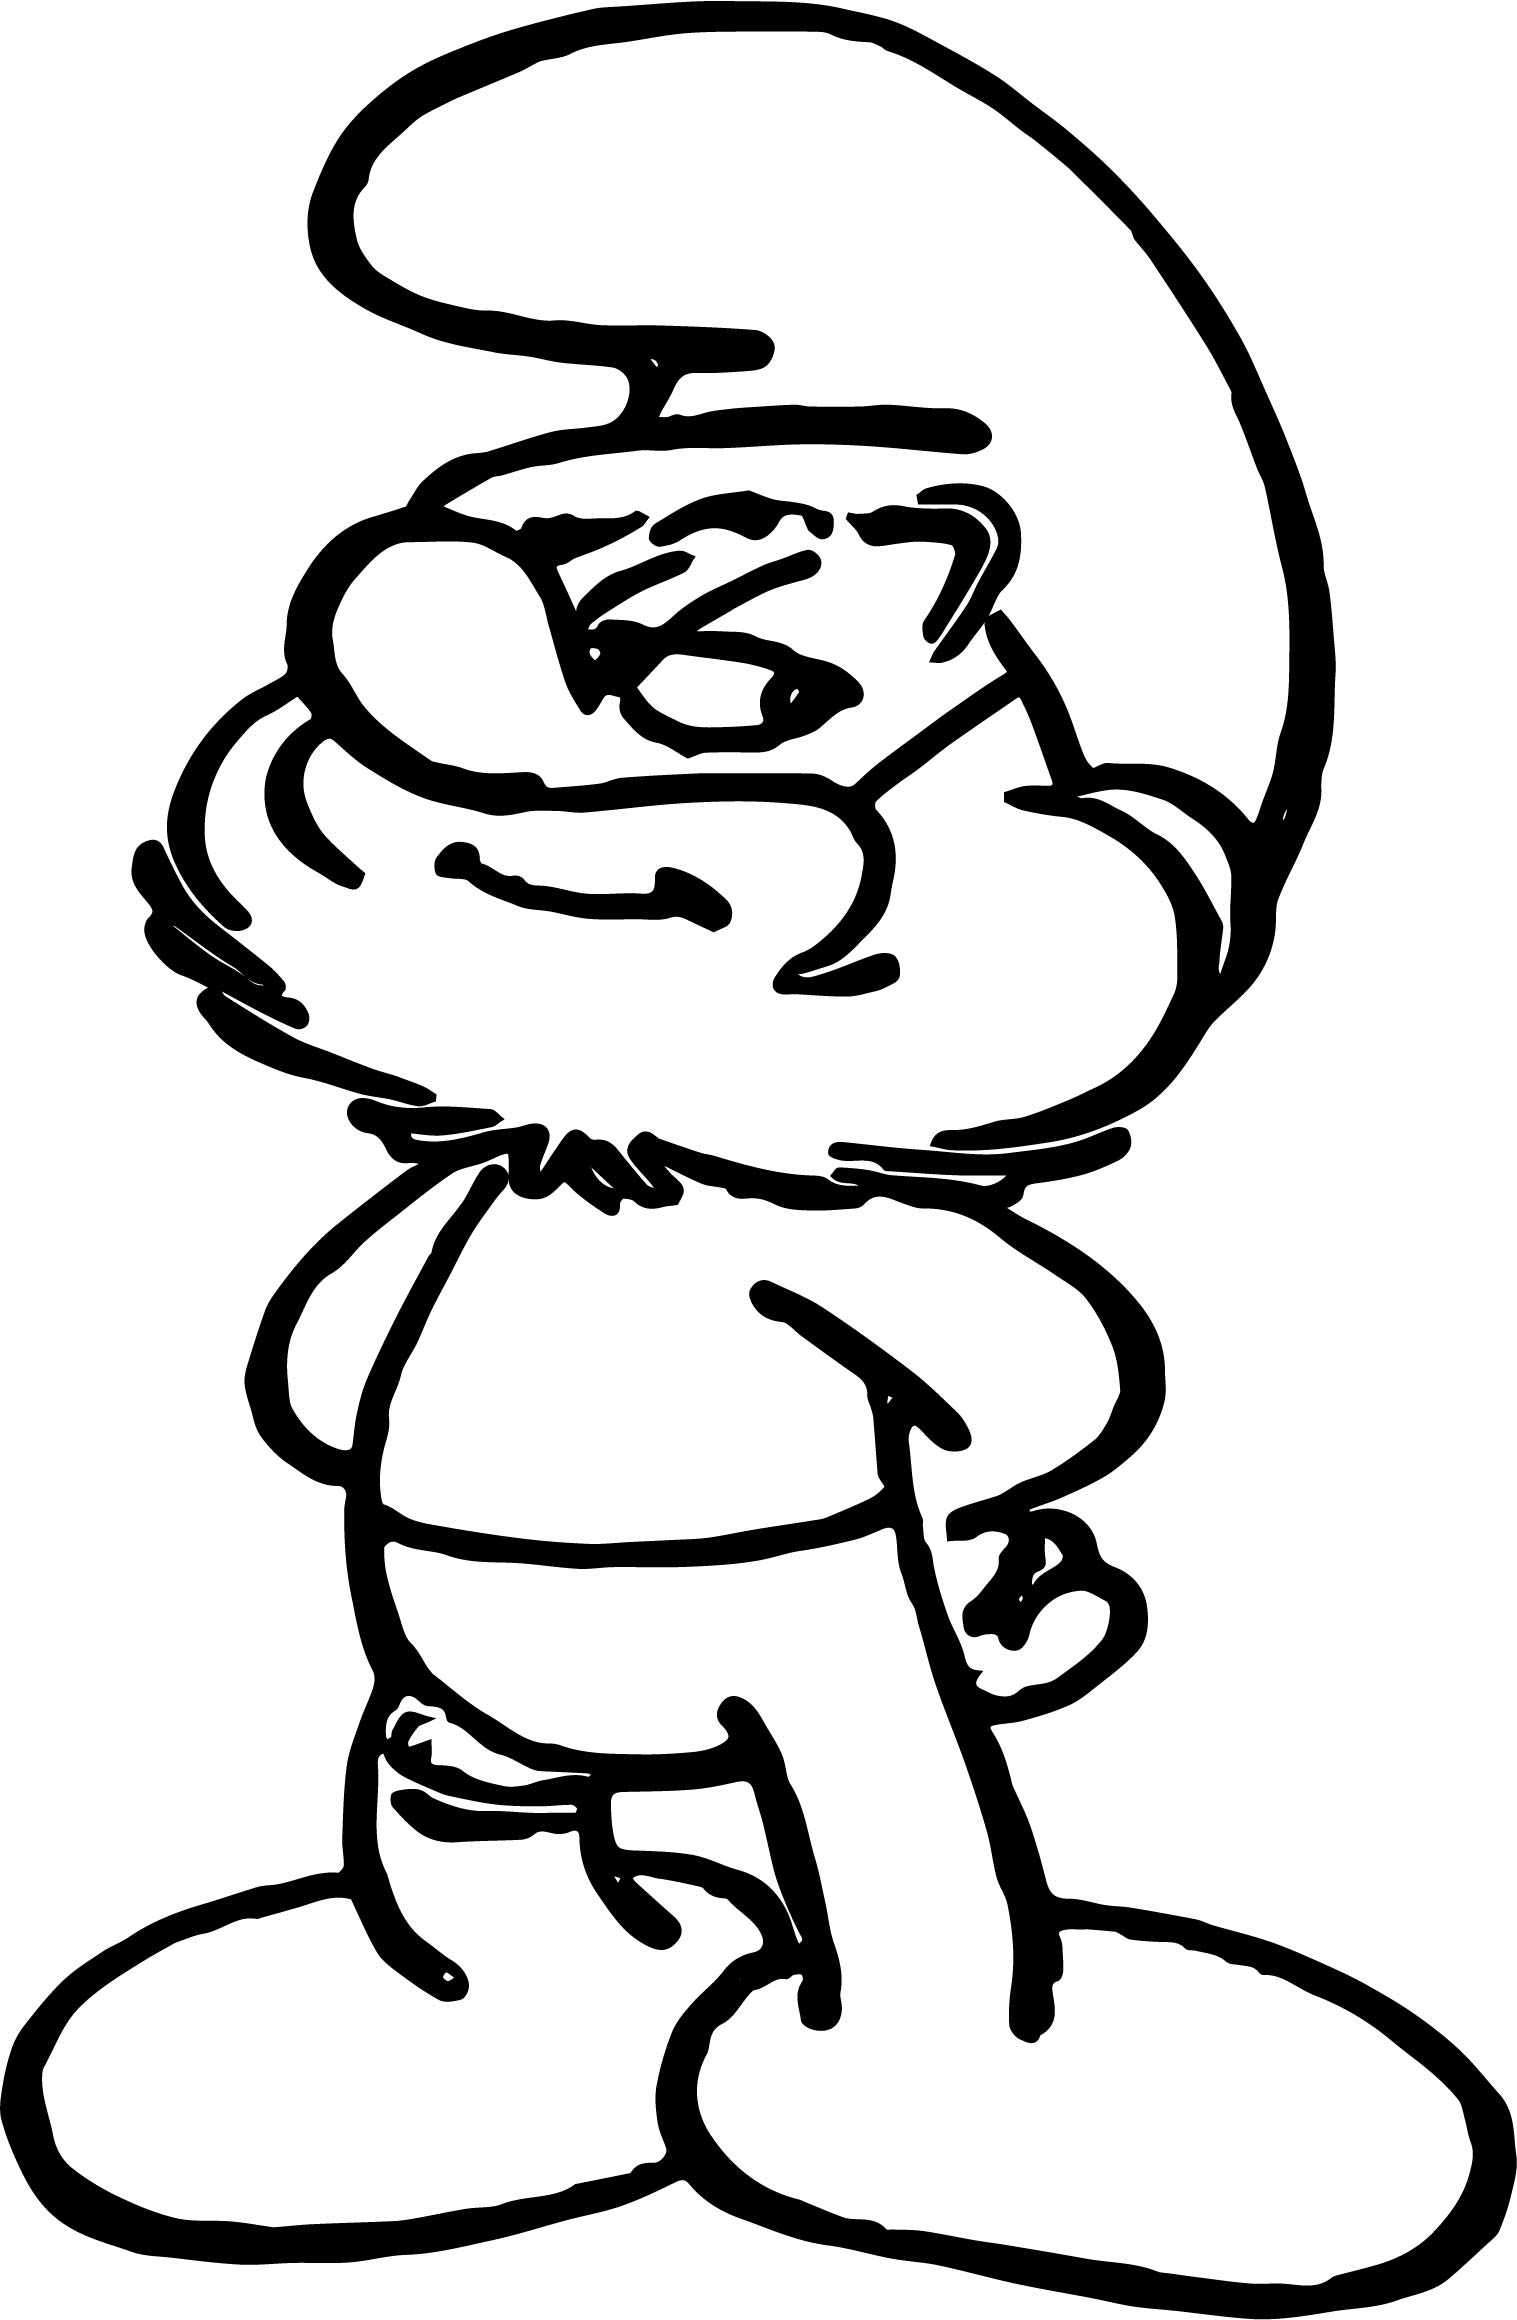 Papa smurf good smurf coloring page for Smurf house coloring pages